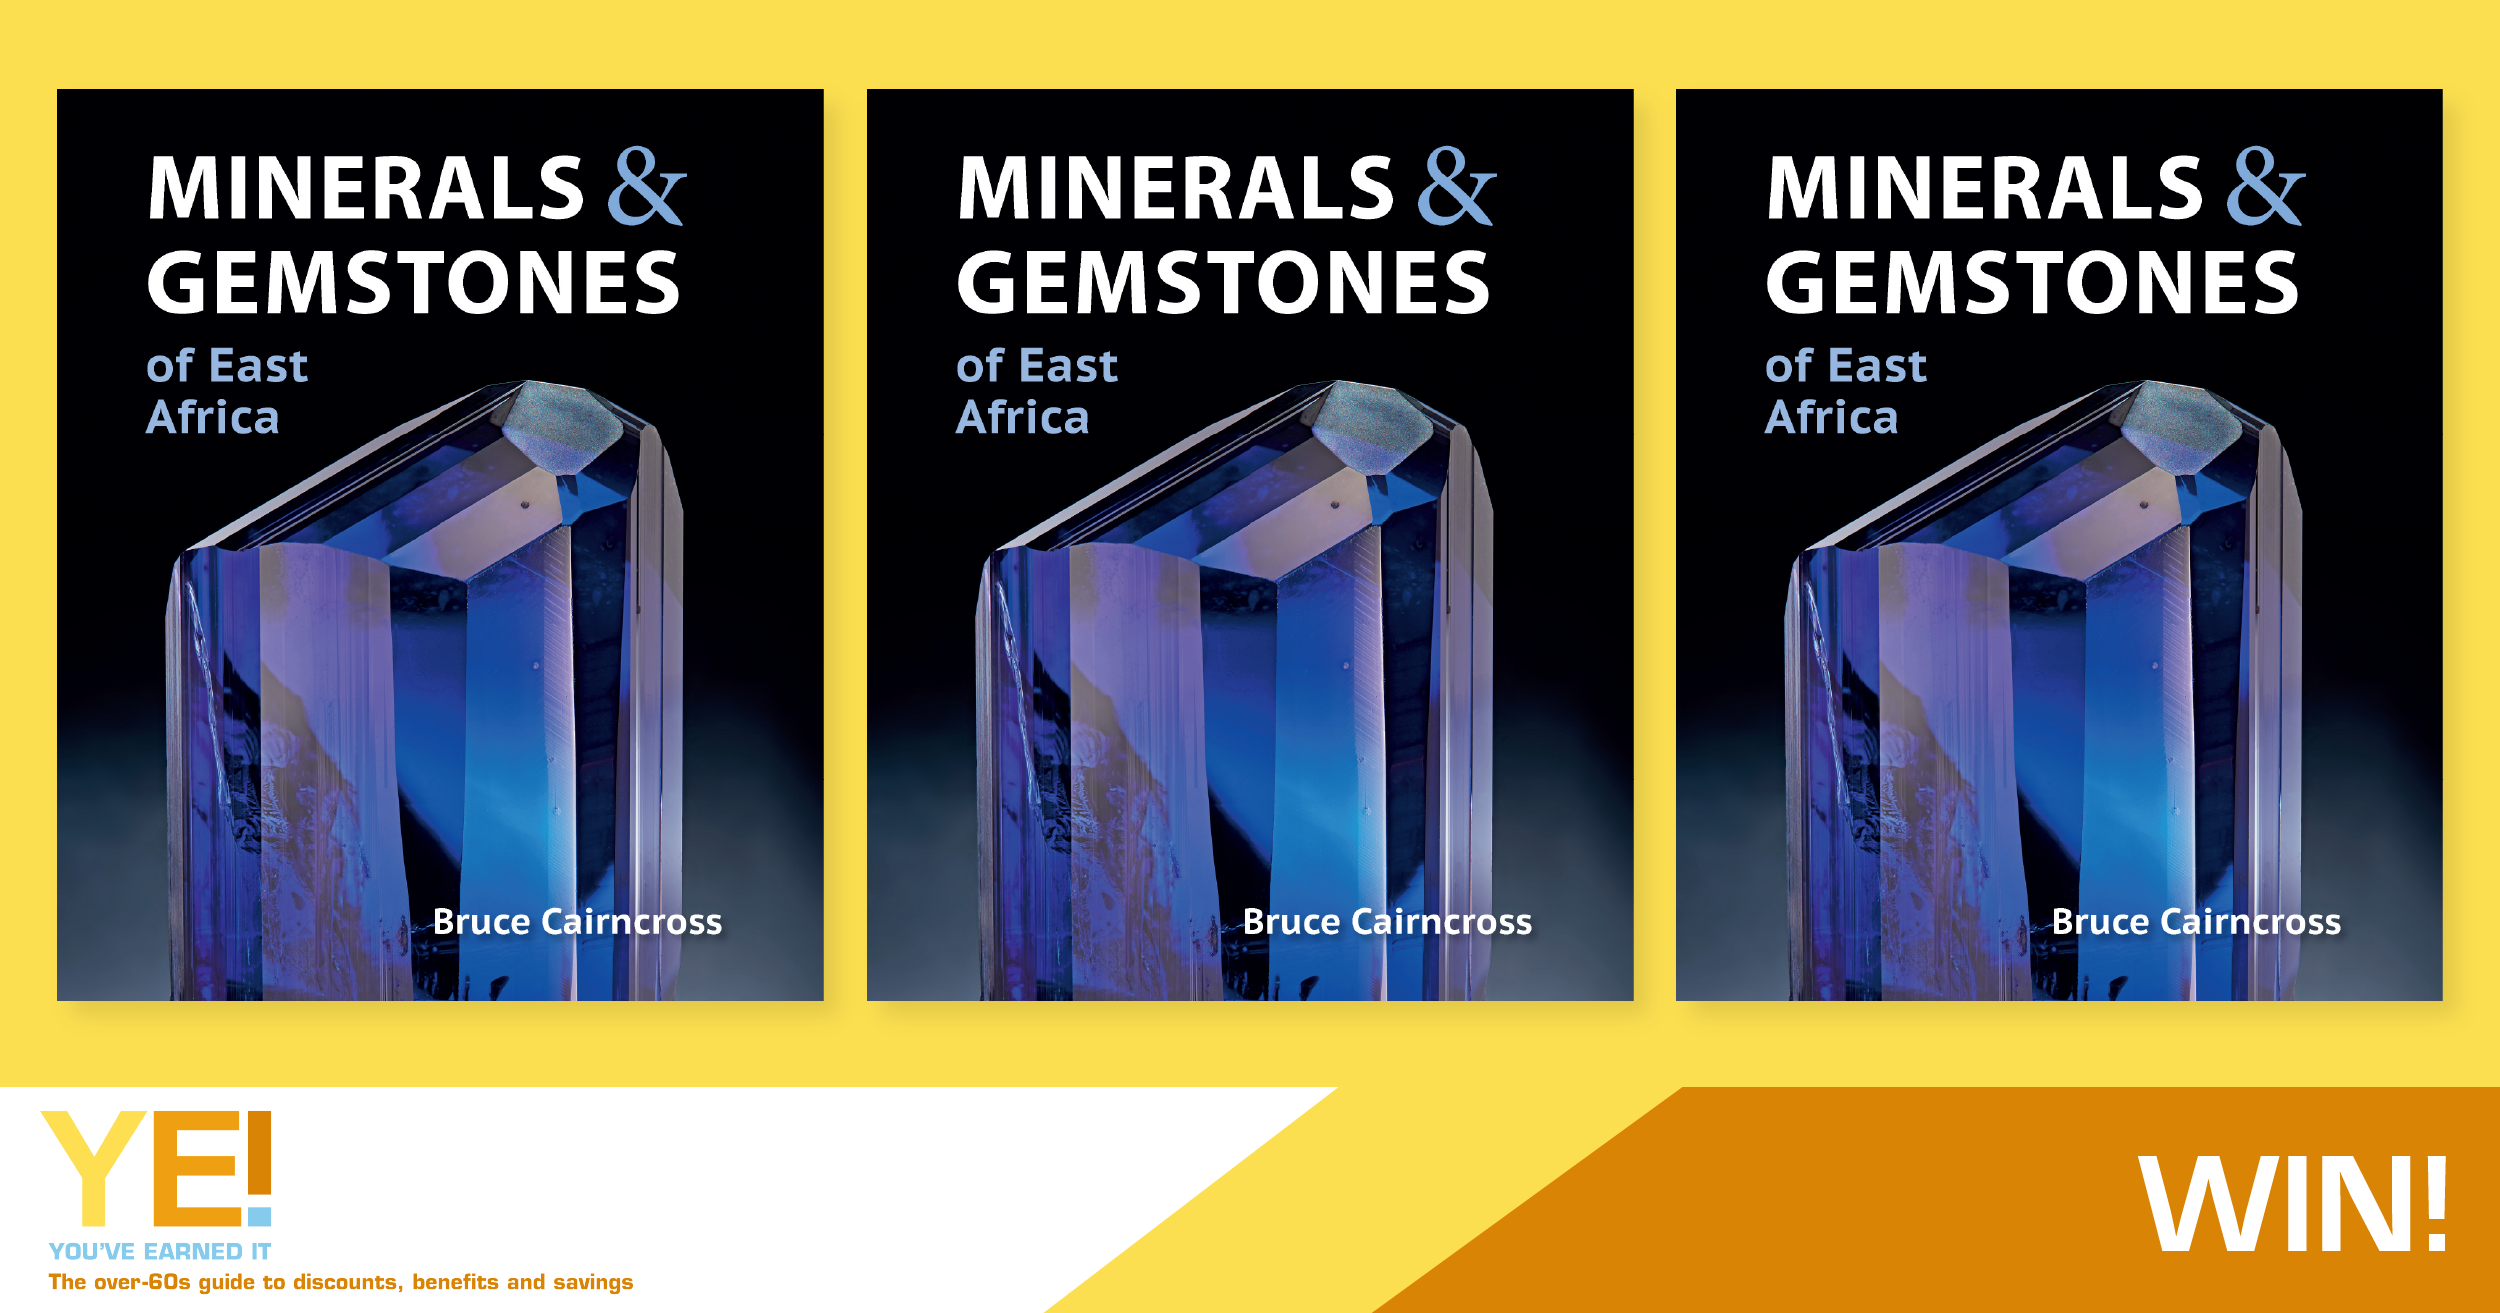 Minerals & Gemstones of East Africa